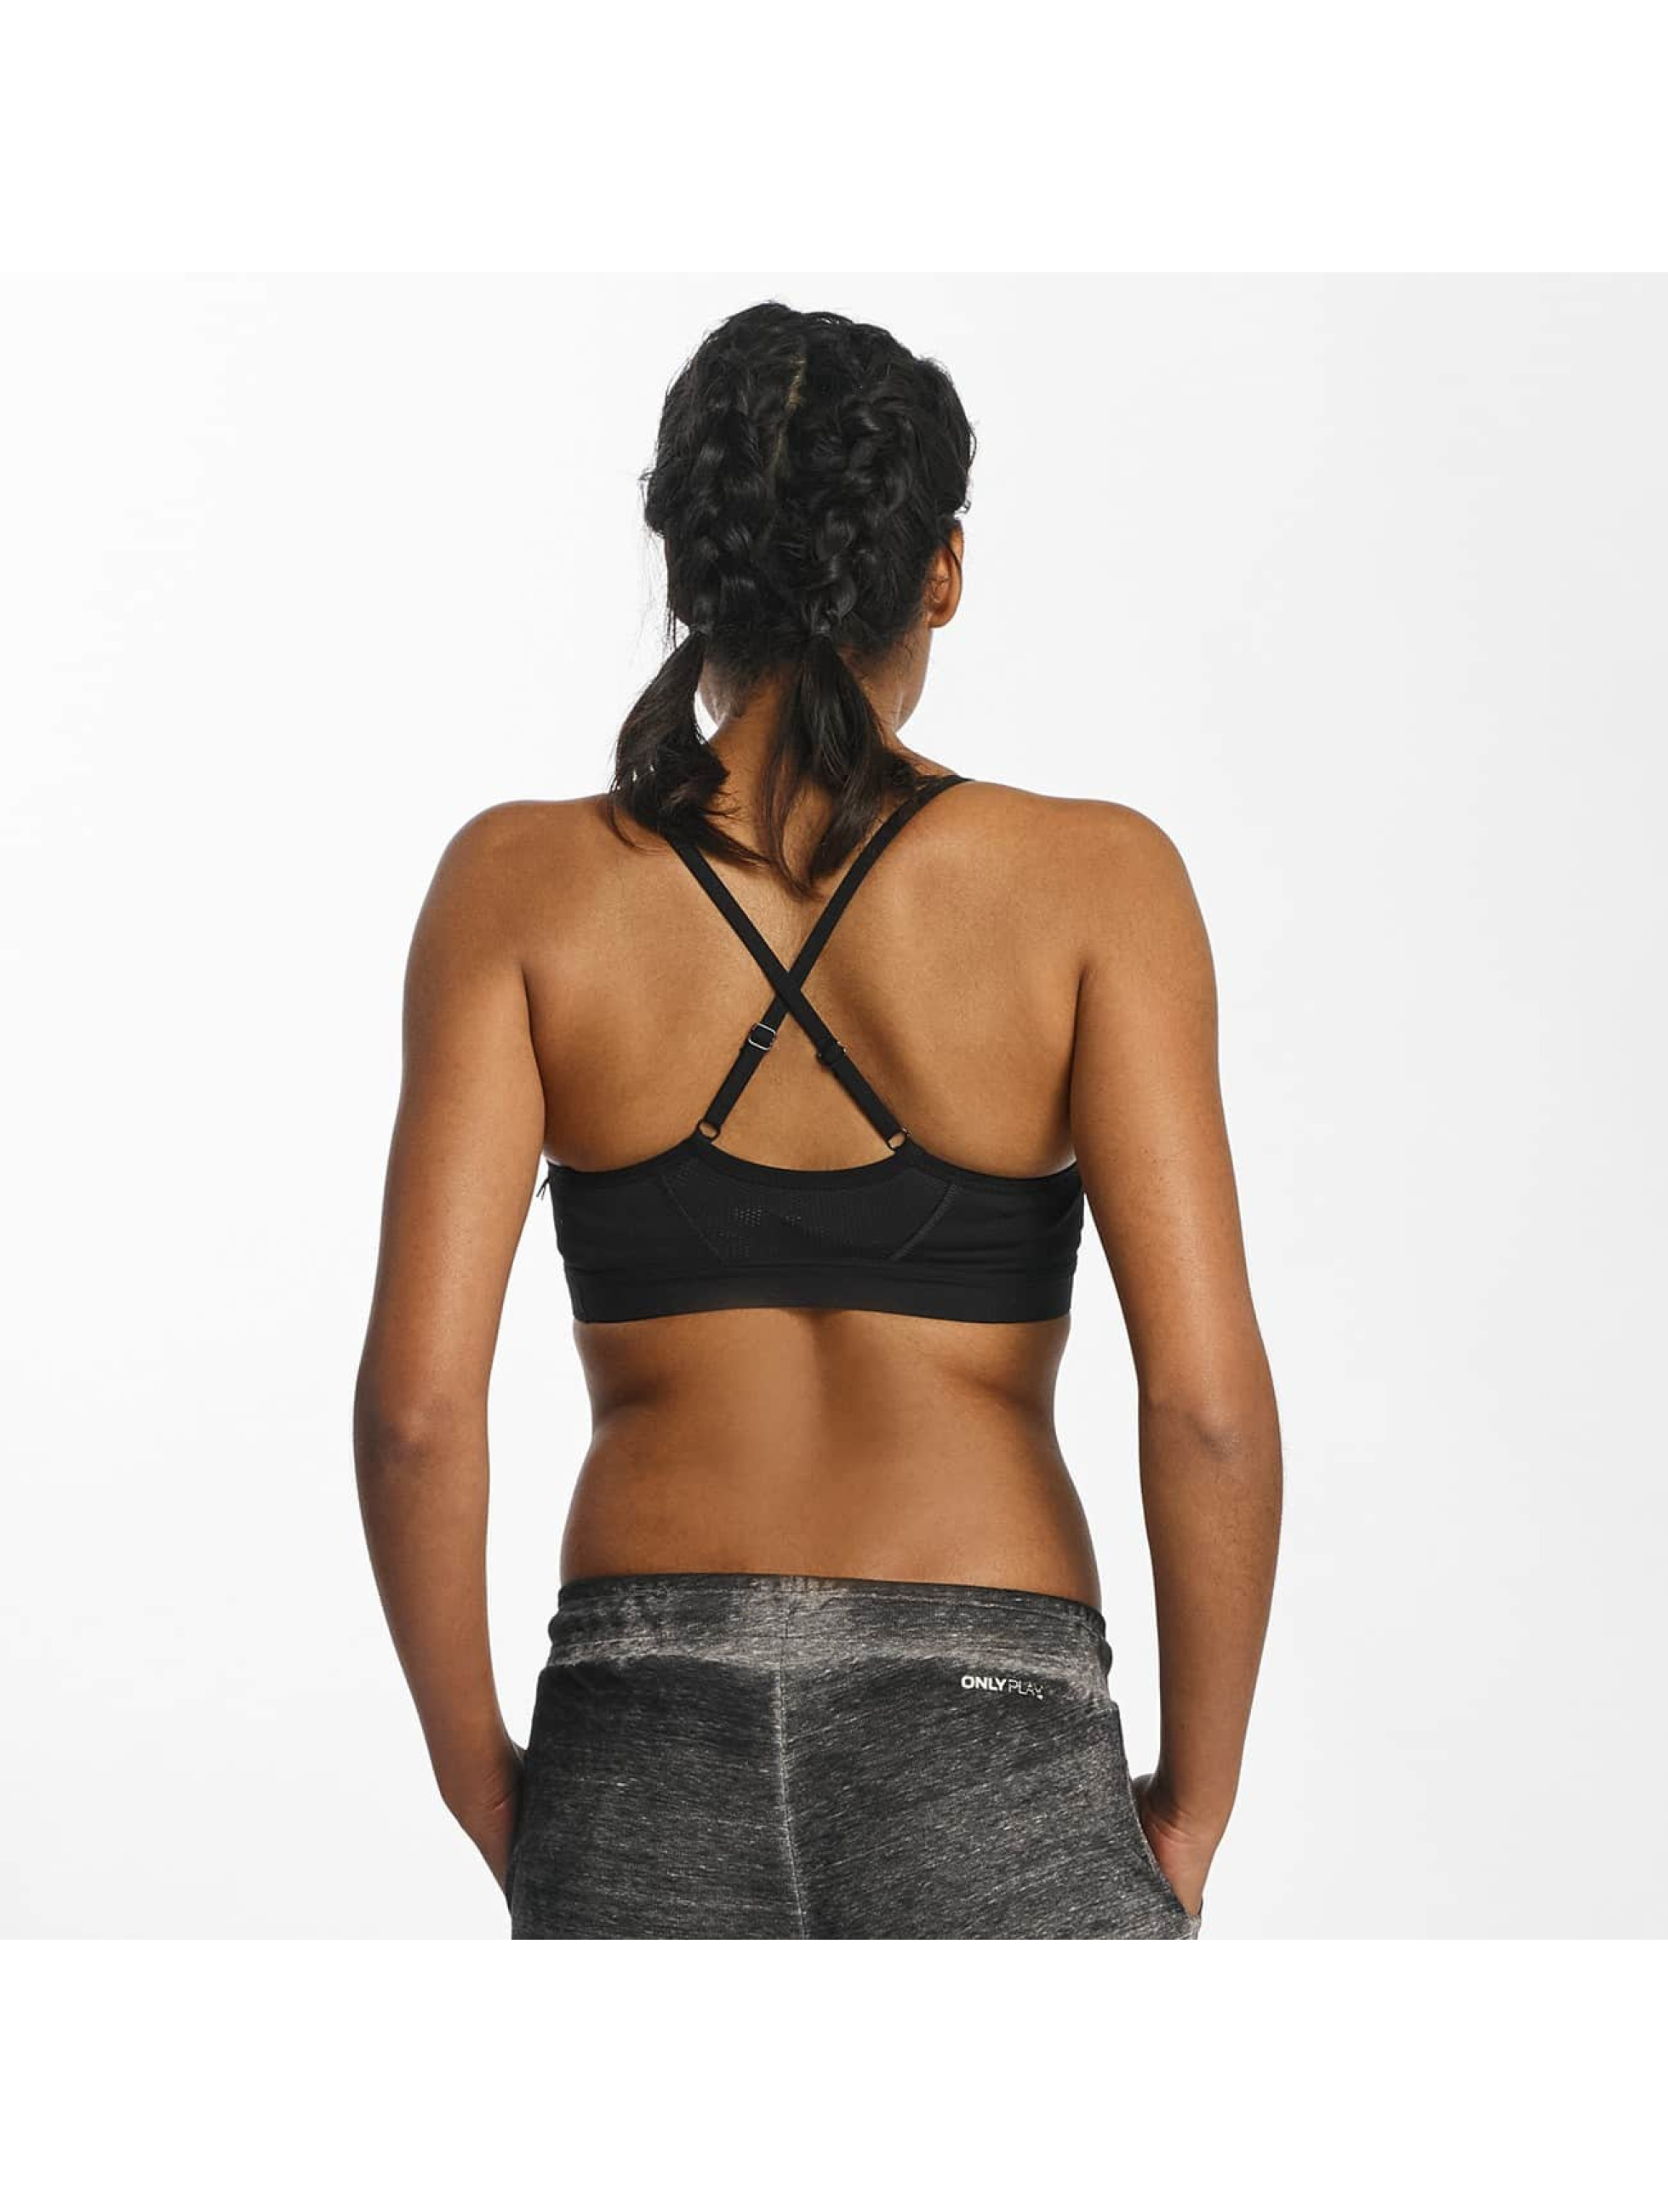 Nike Performance Underwear Favorites Sports black